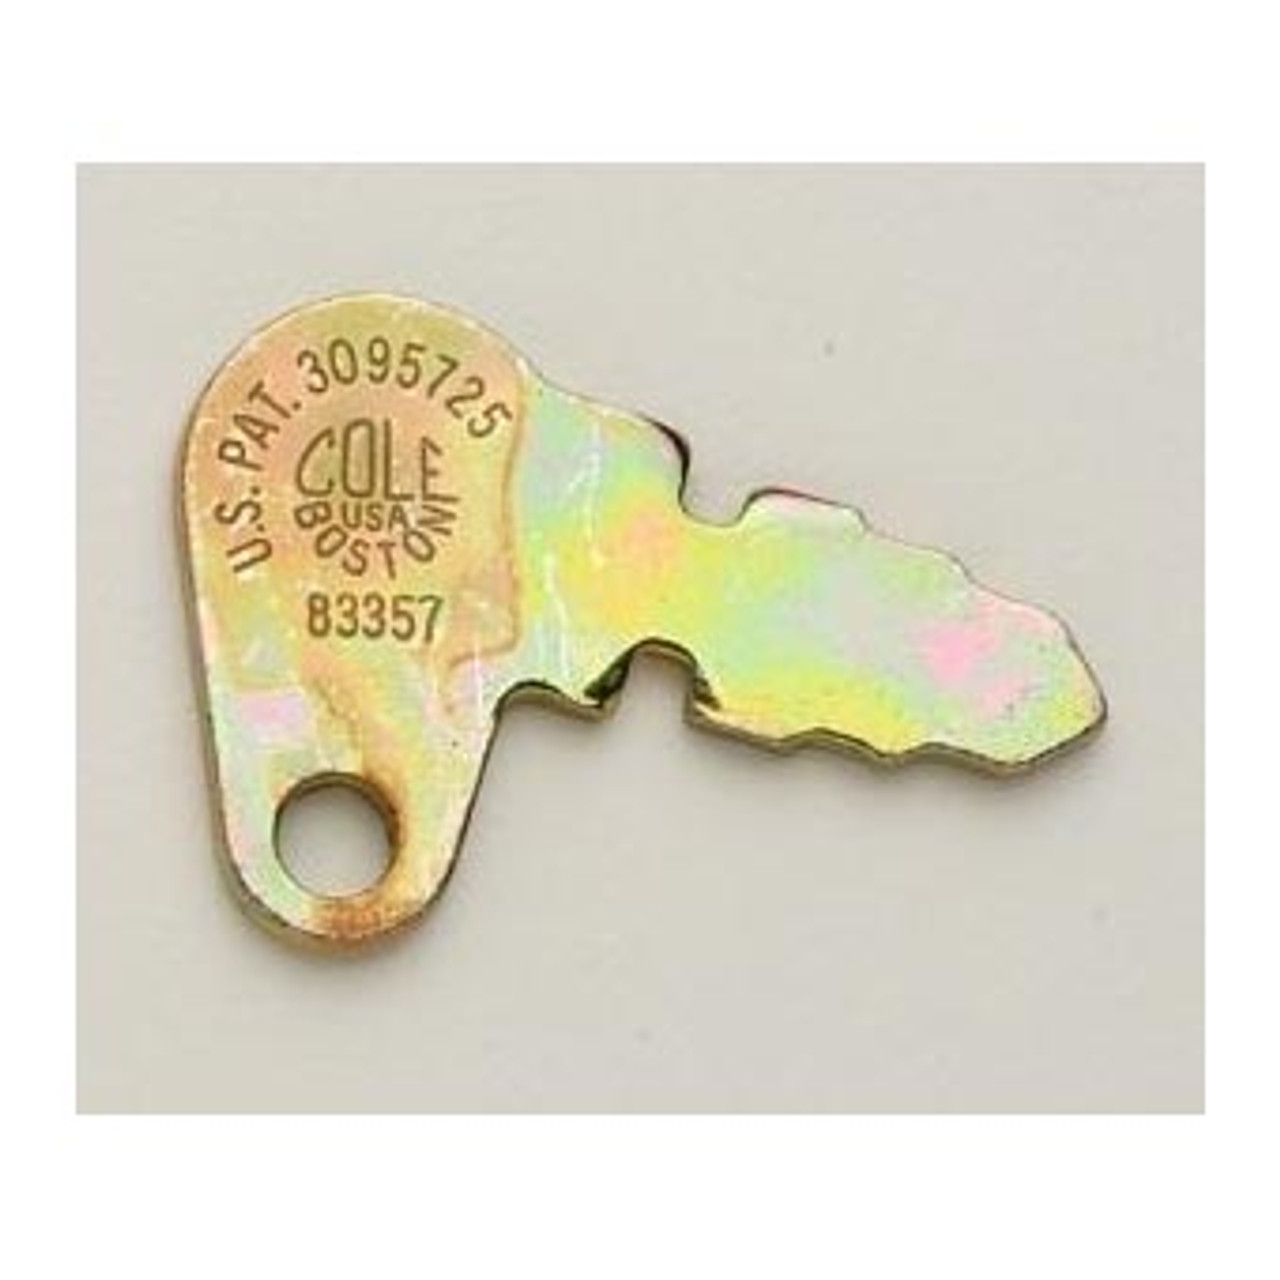 UNIVERSAL KEY (100 PC MOQ)